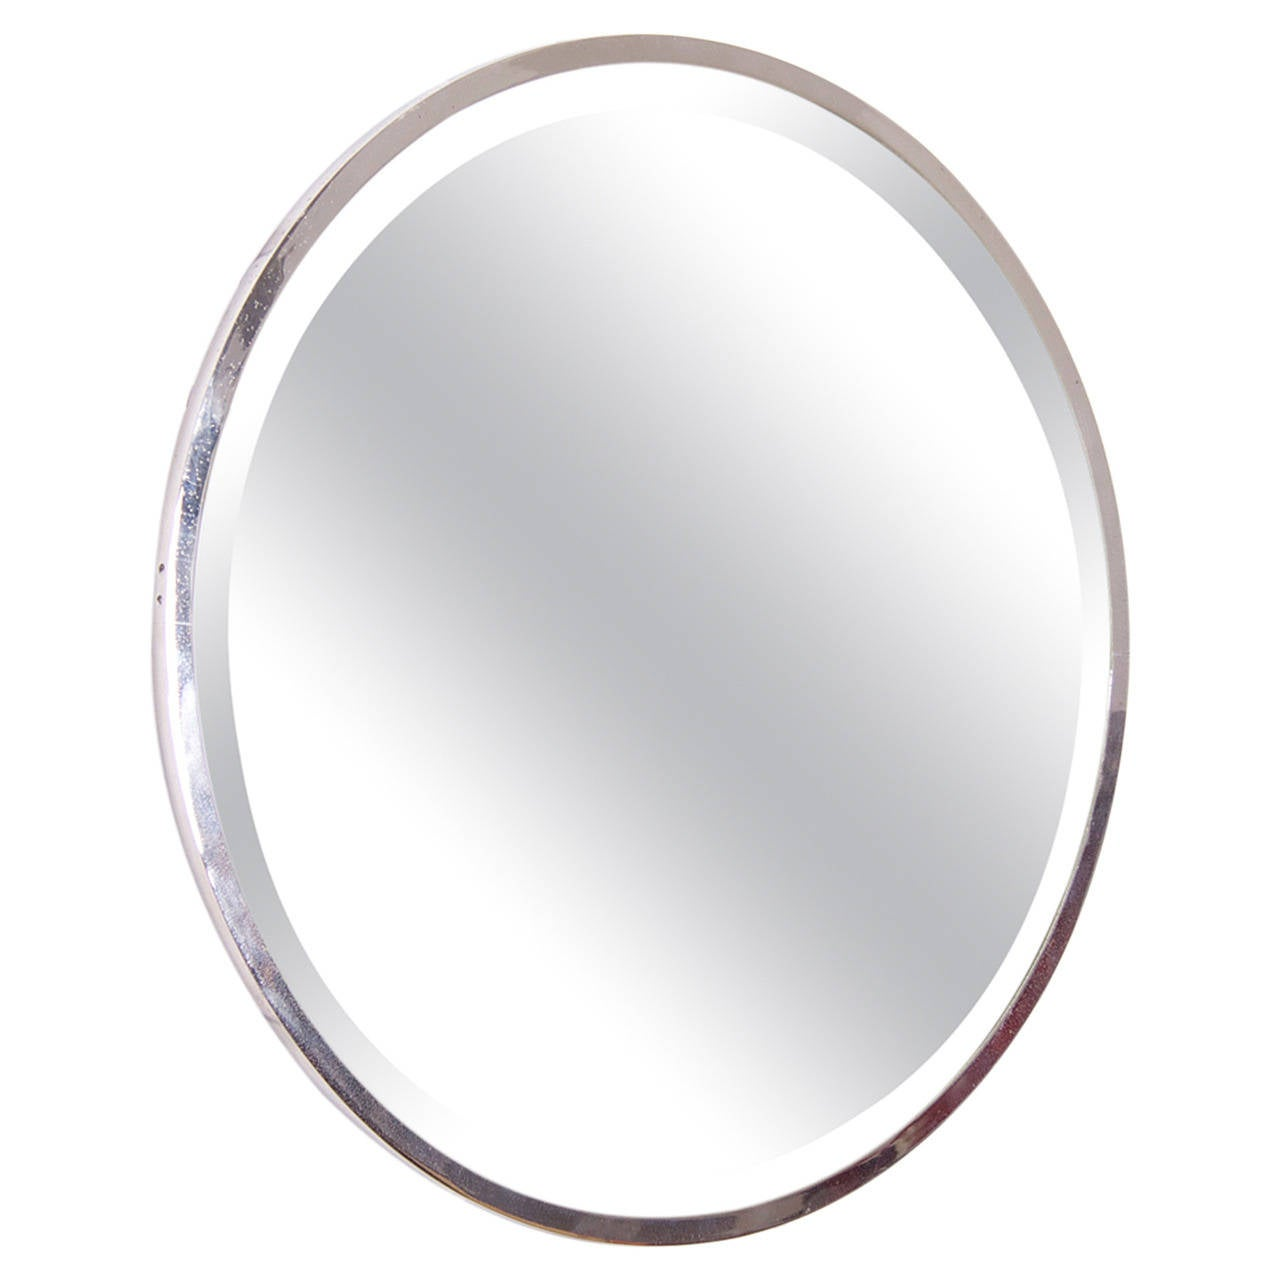 Art Deco Wall Mirror round nickel plated french art deco wall mirror for sale at 1stdibs